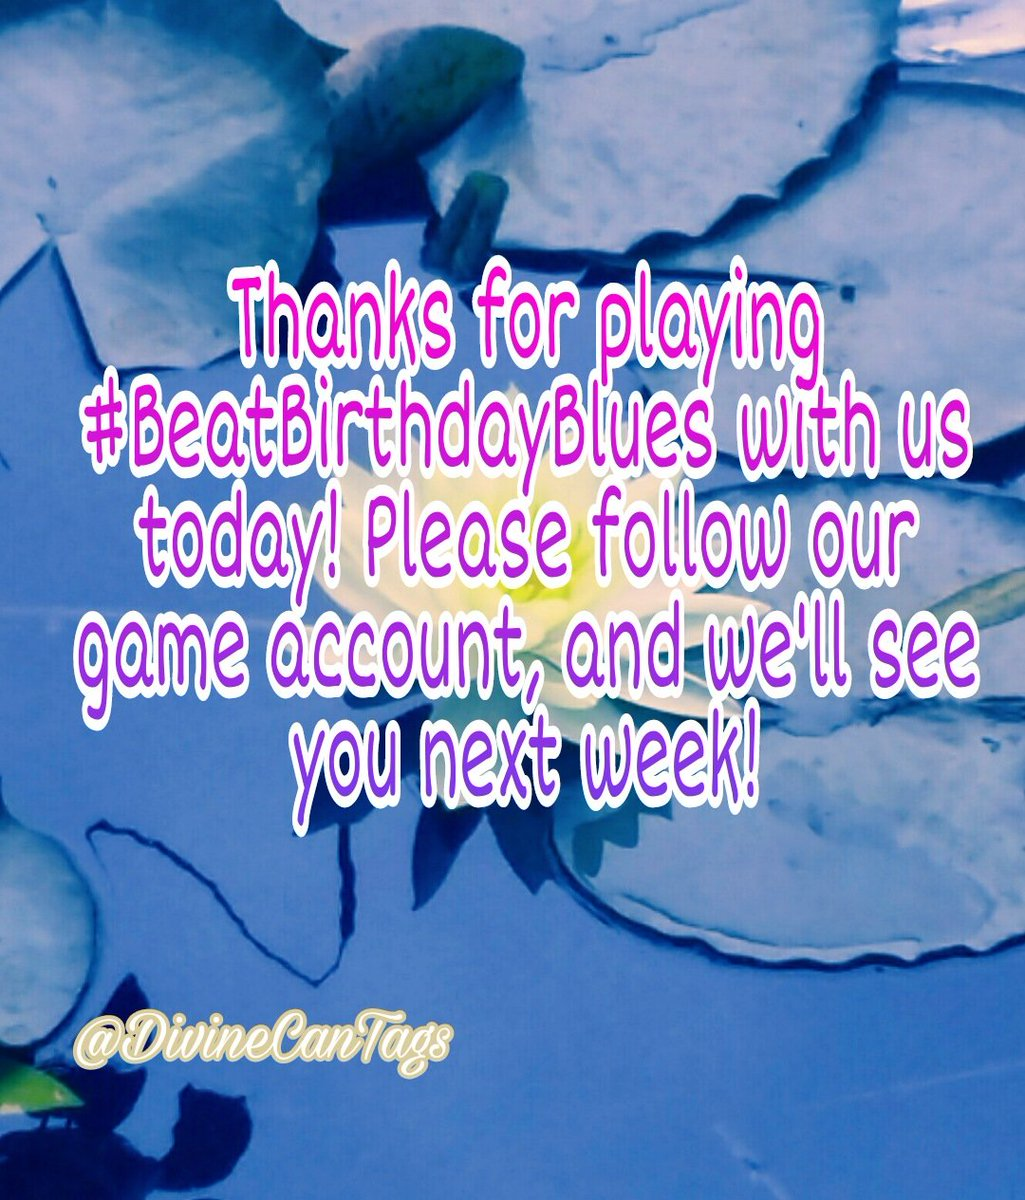 Thank you for playing #BeatBirthdayBlues with us today, we loved your tweets and your creativity! Many of you had great, supportive ideas! Please follow our game account and @poolgoddess918 will see you next week!